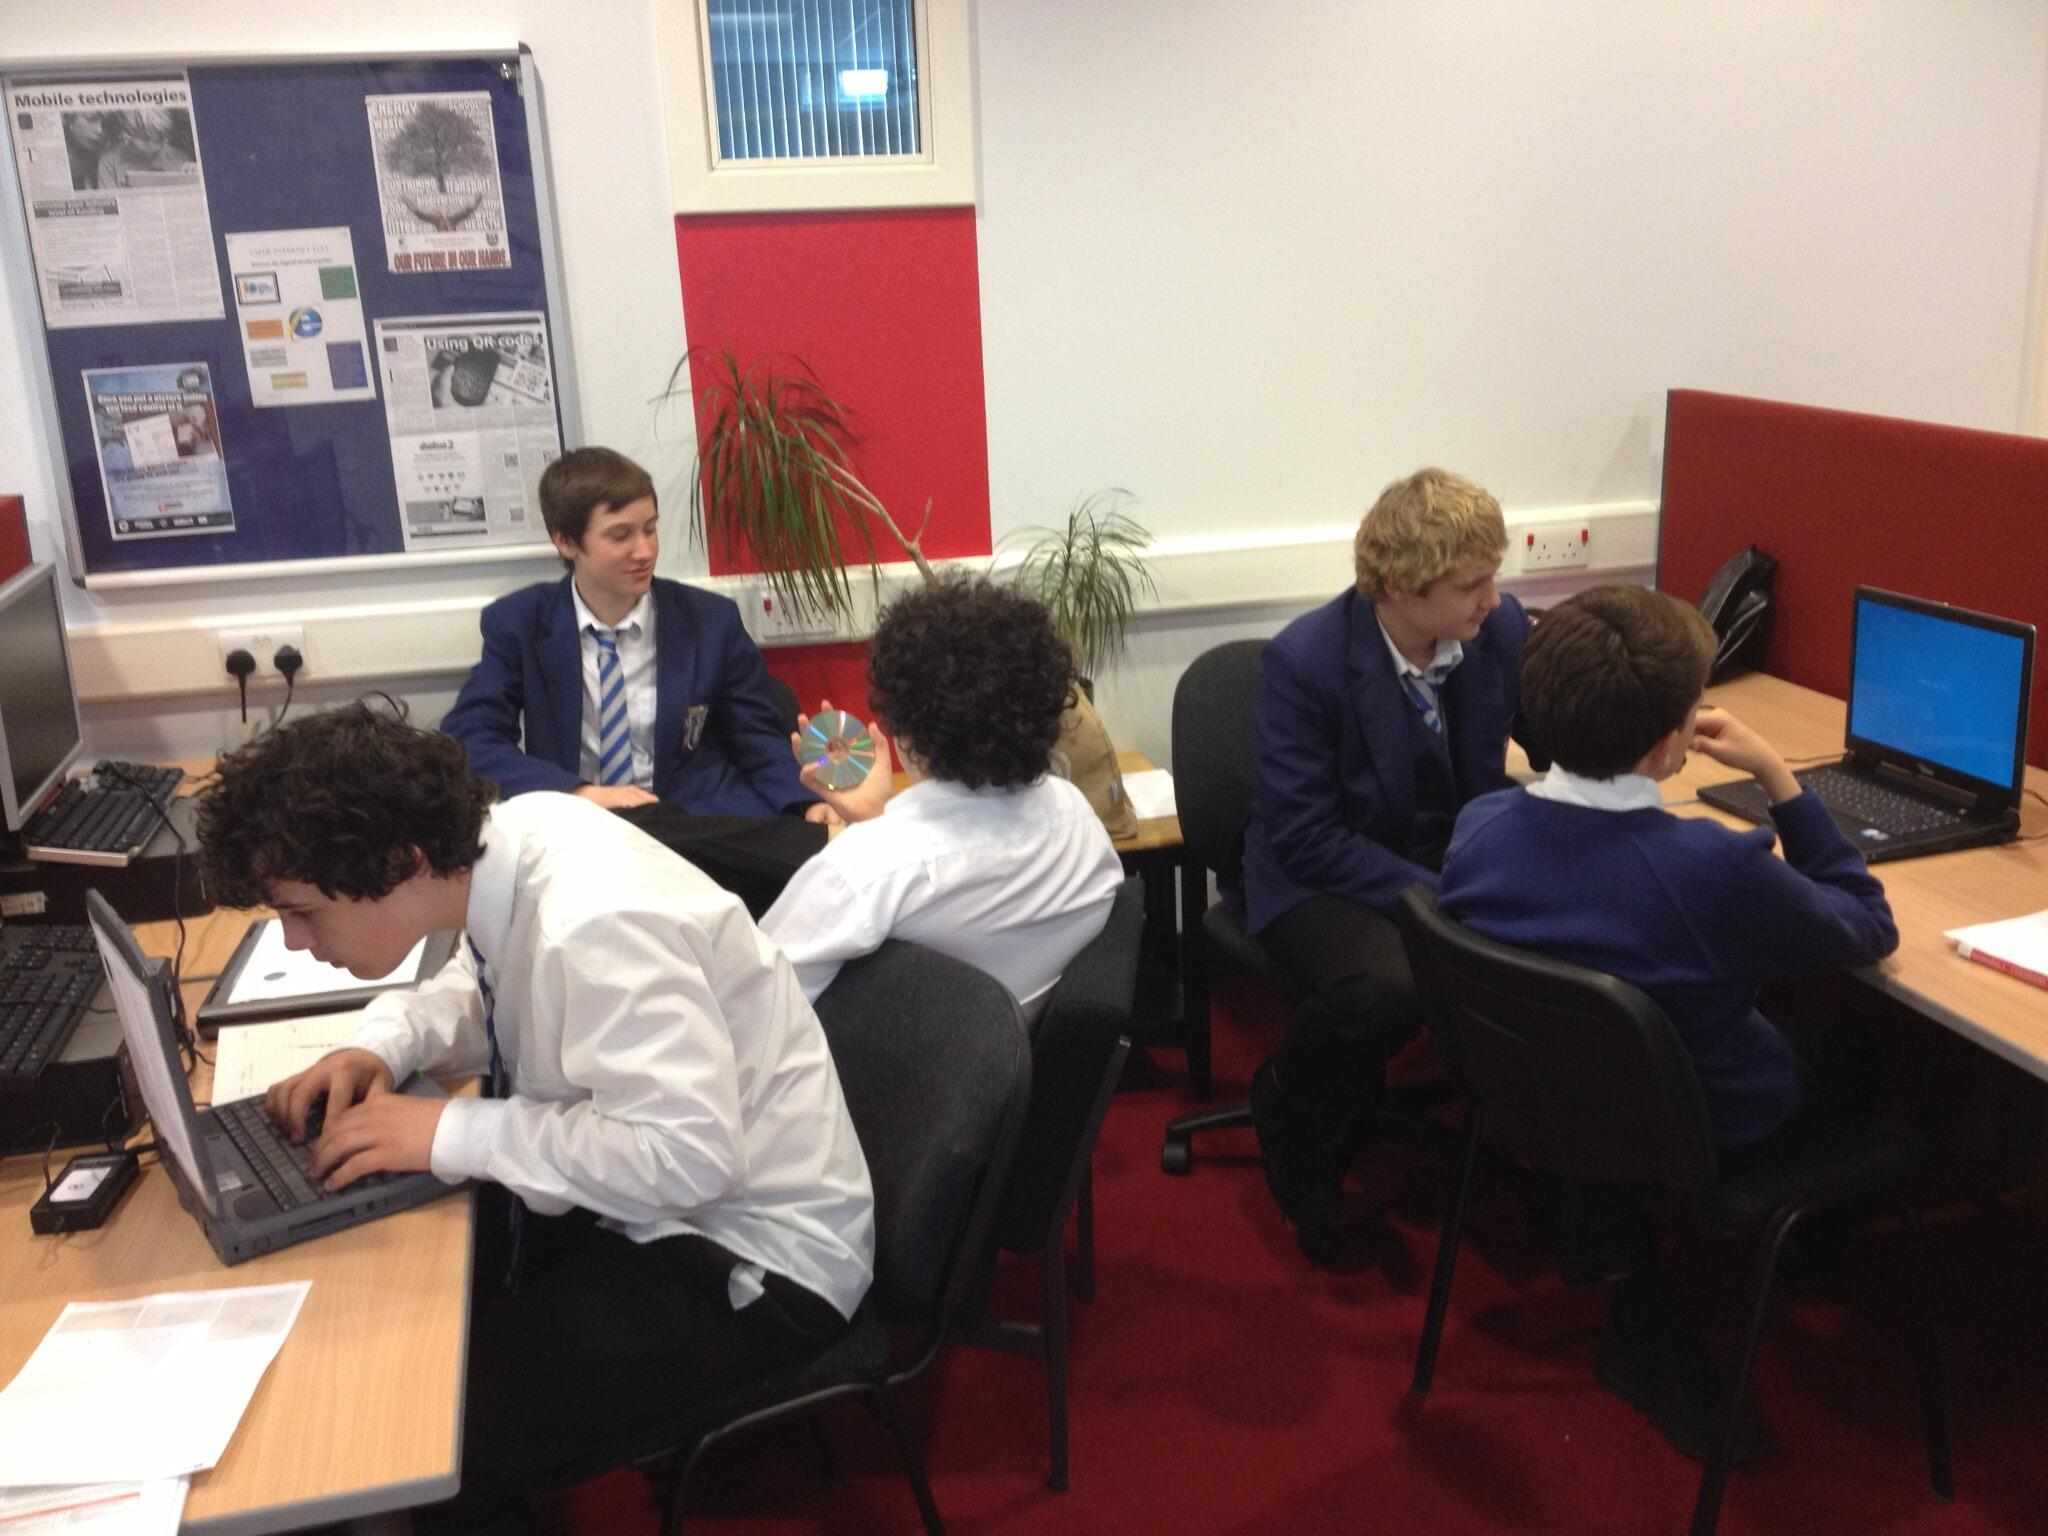 Pupils working on laptops